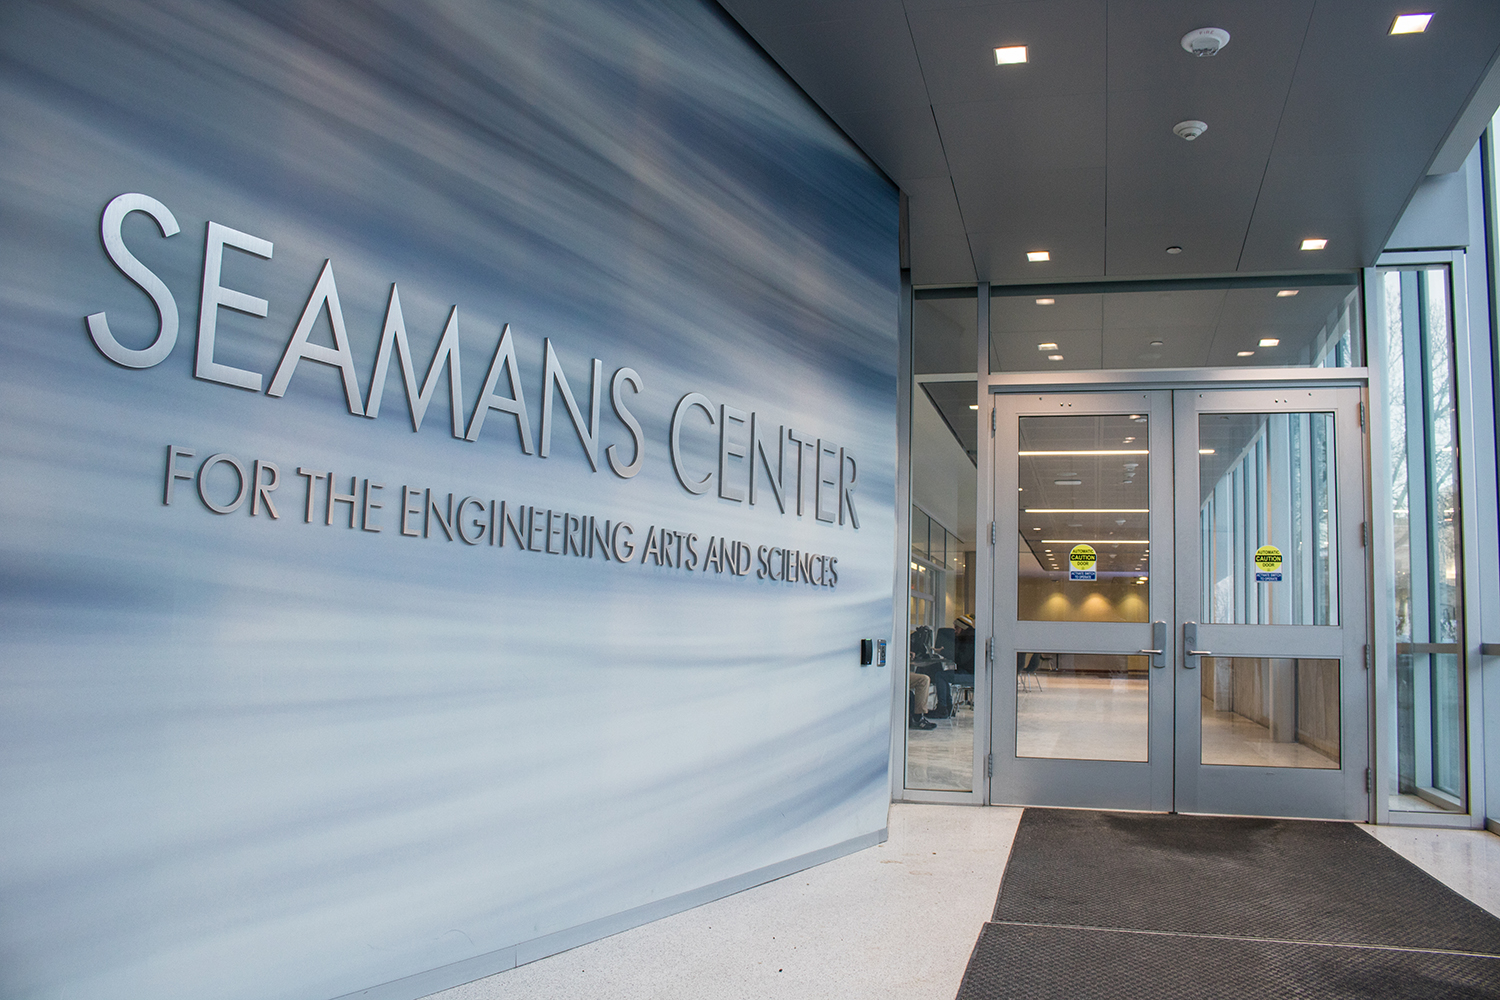 The Seamans Center for the Engineering Arts and Sciences is seen on Tuesday, January 29, 2019.